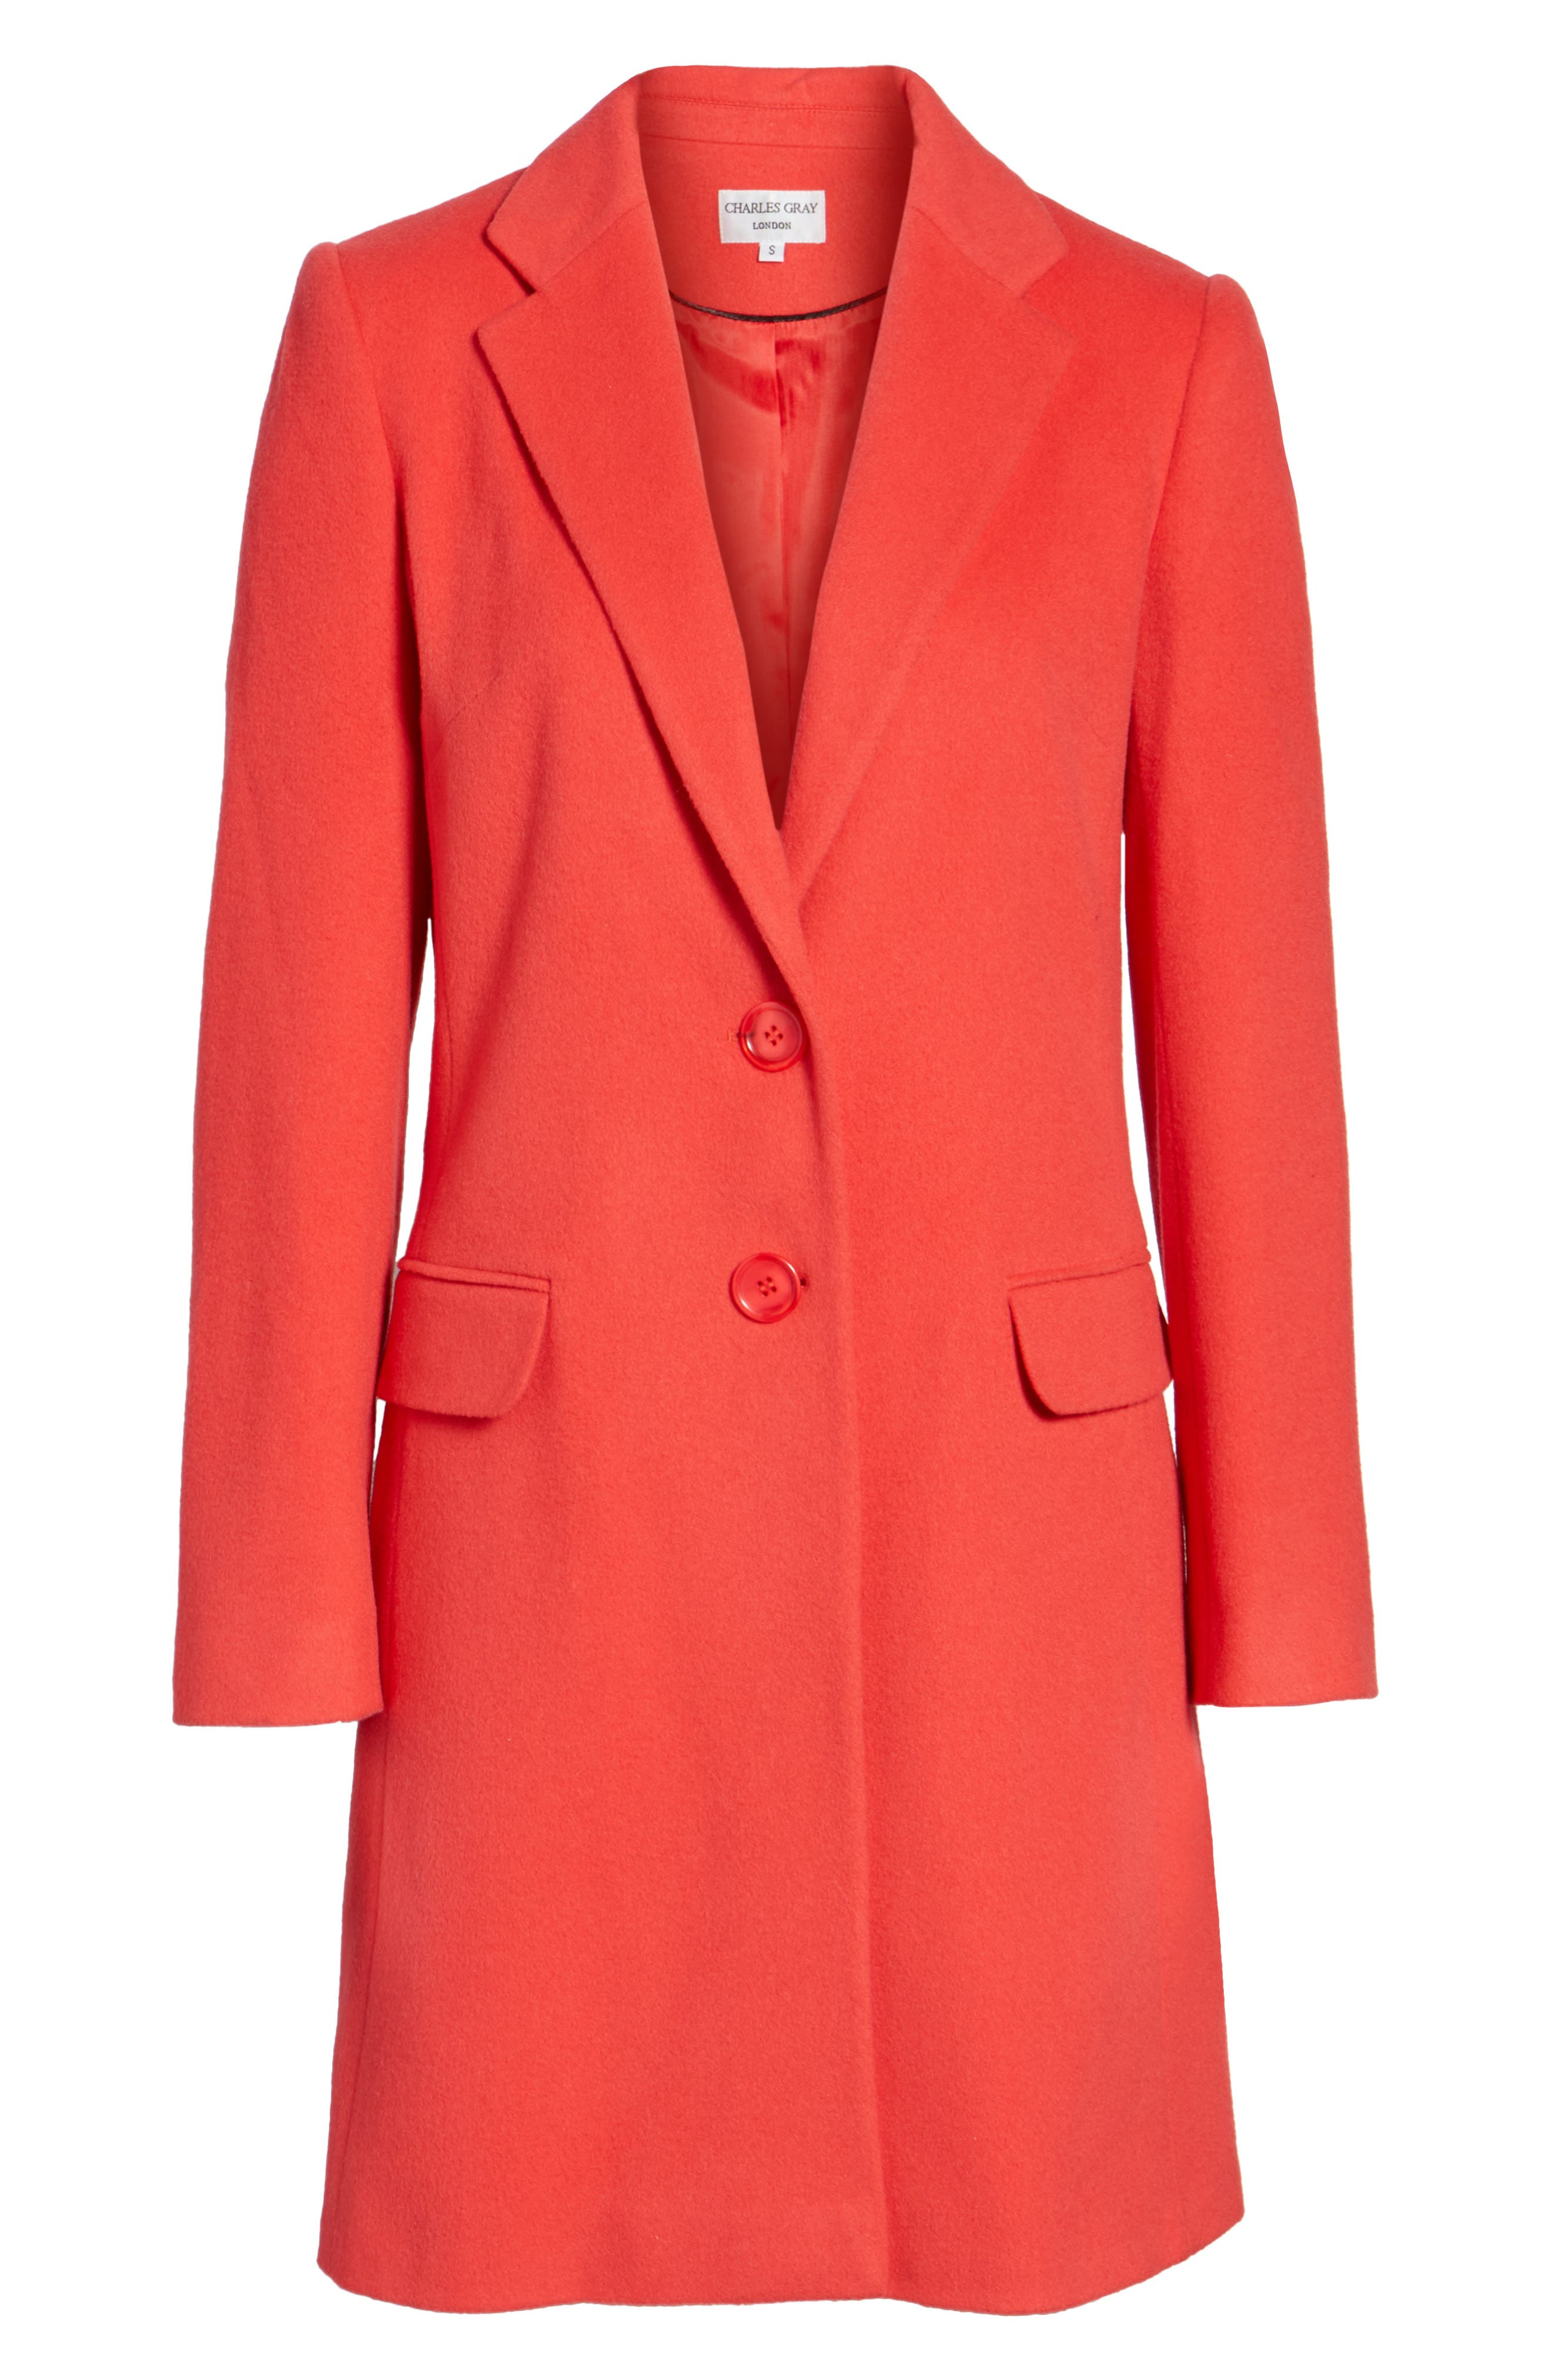 Charles Gray London Wool Blend College Coat,                             Alternate thumbnail 7, color,                             Coral